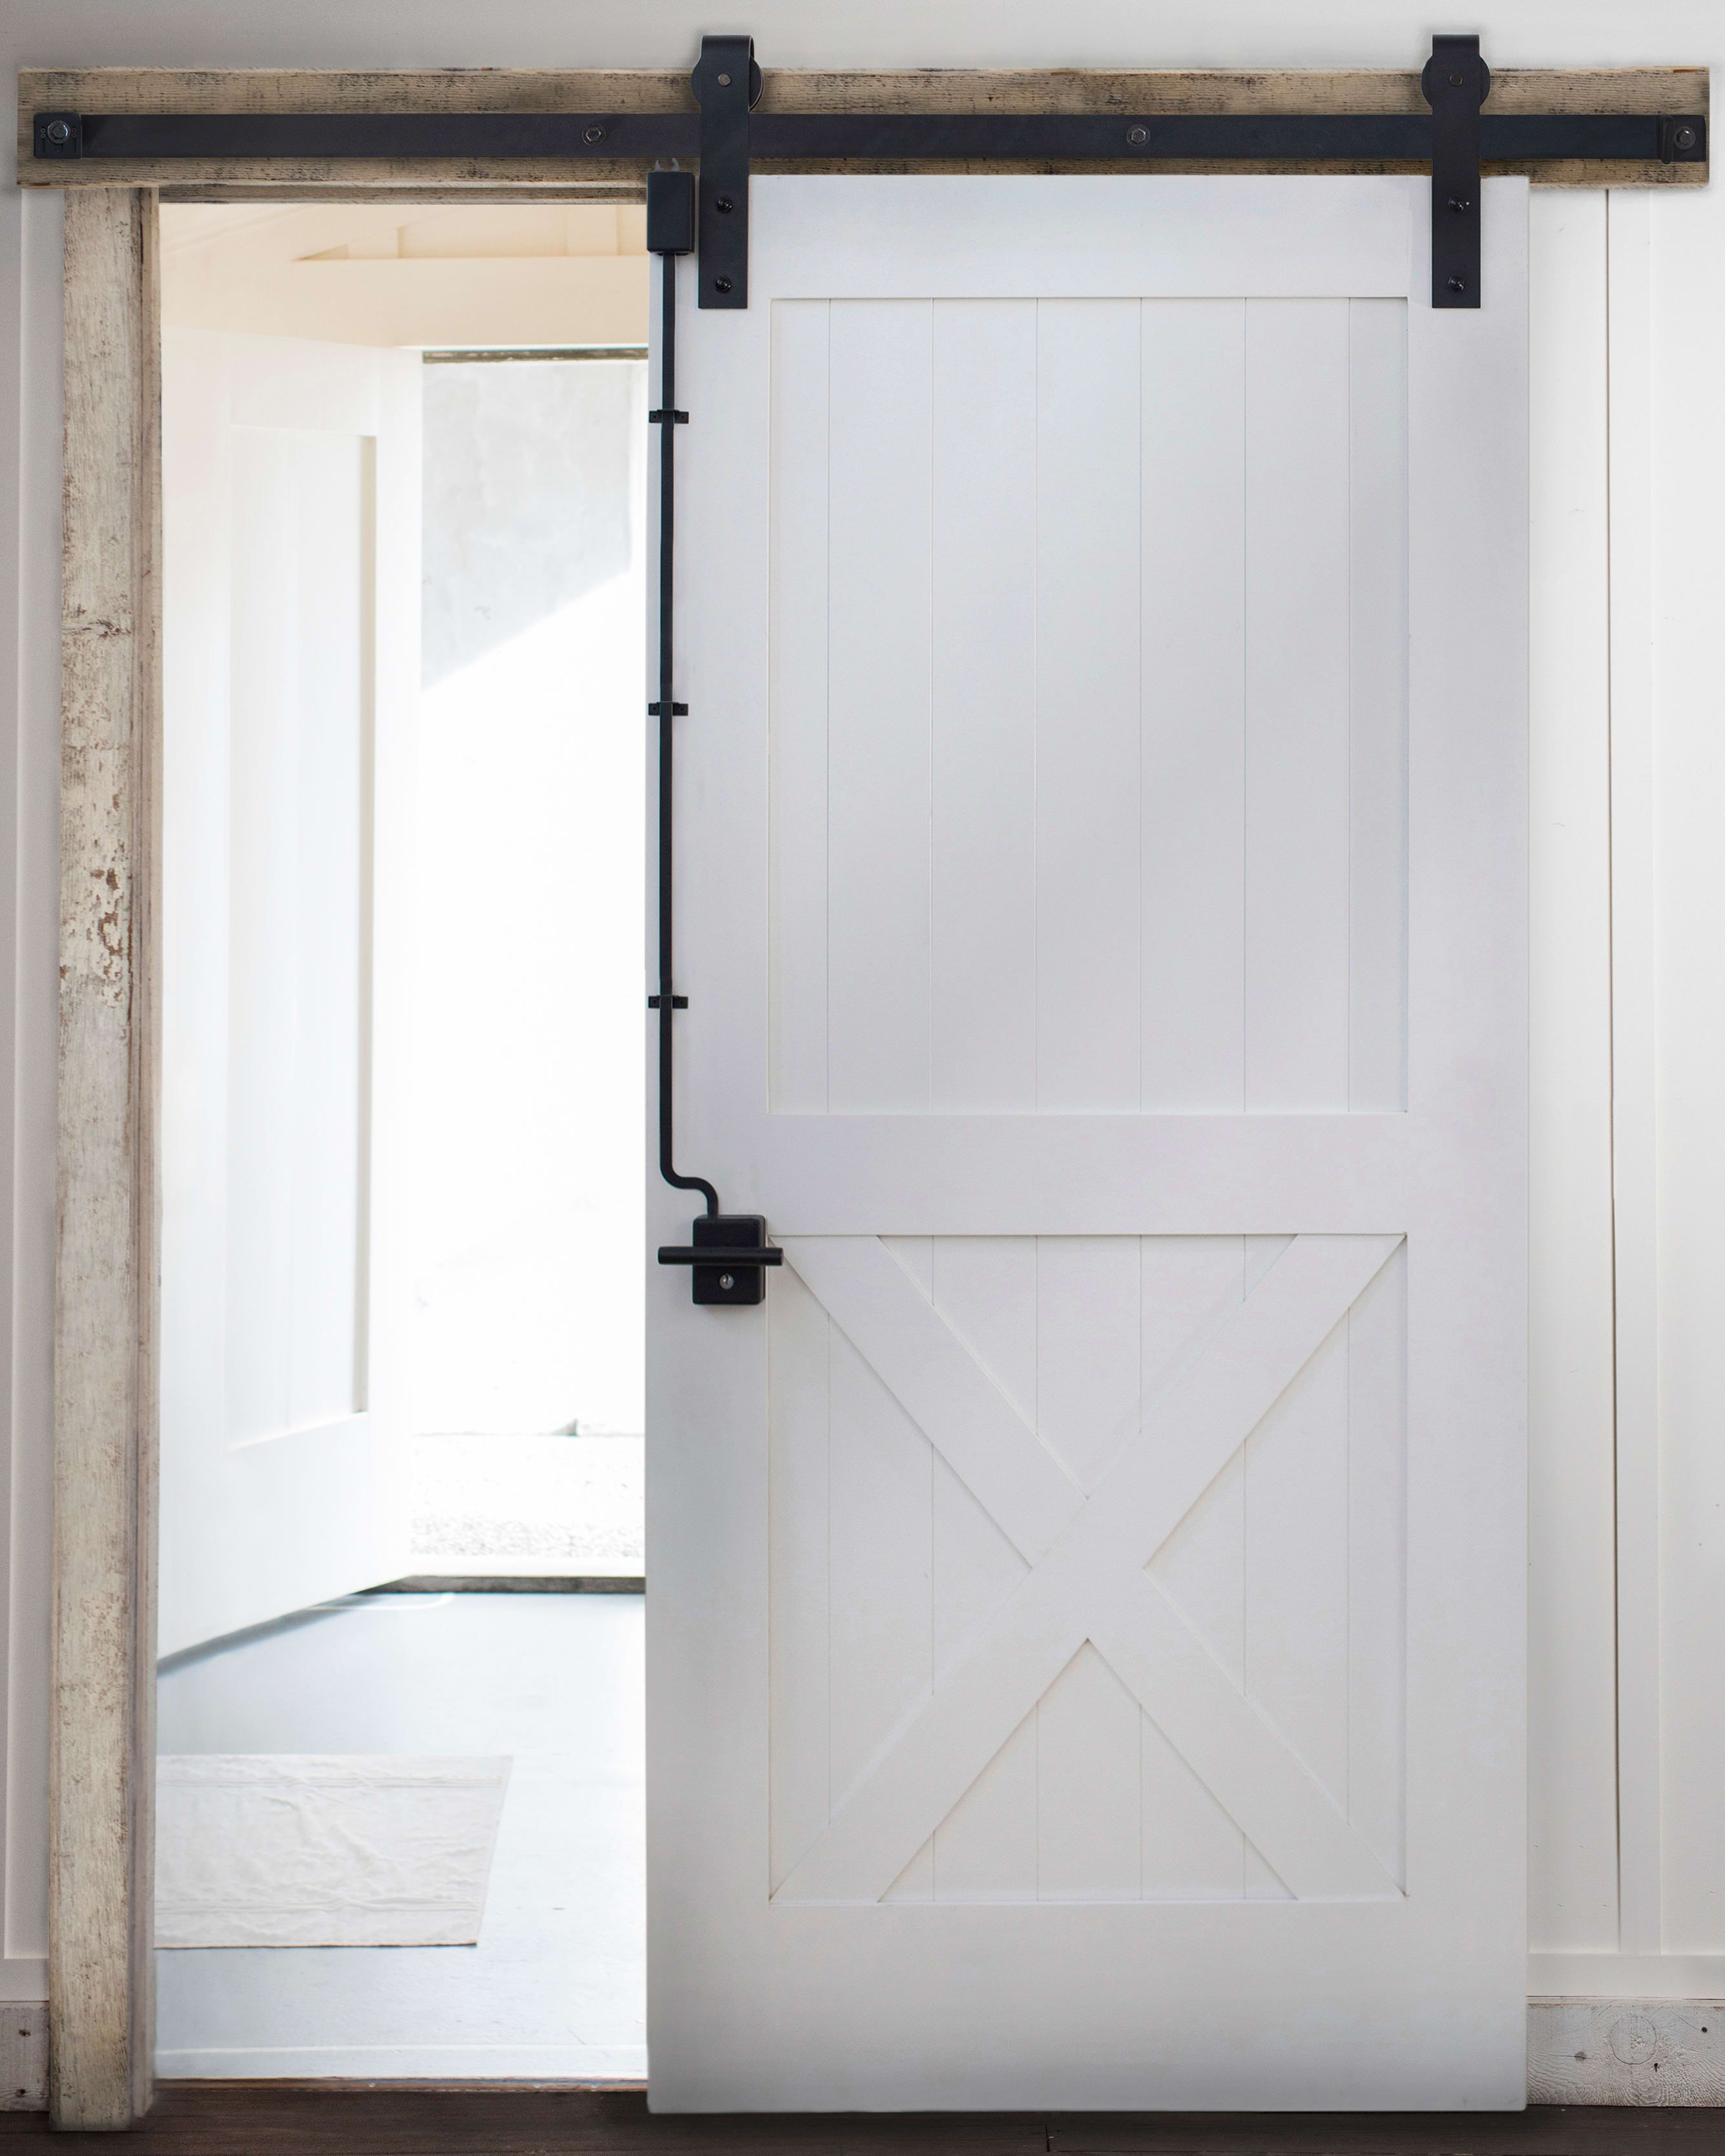 Barn door locking hardware - Now You Can Have Privacy With The New Lock For Sliding Barn Doors